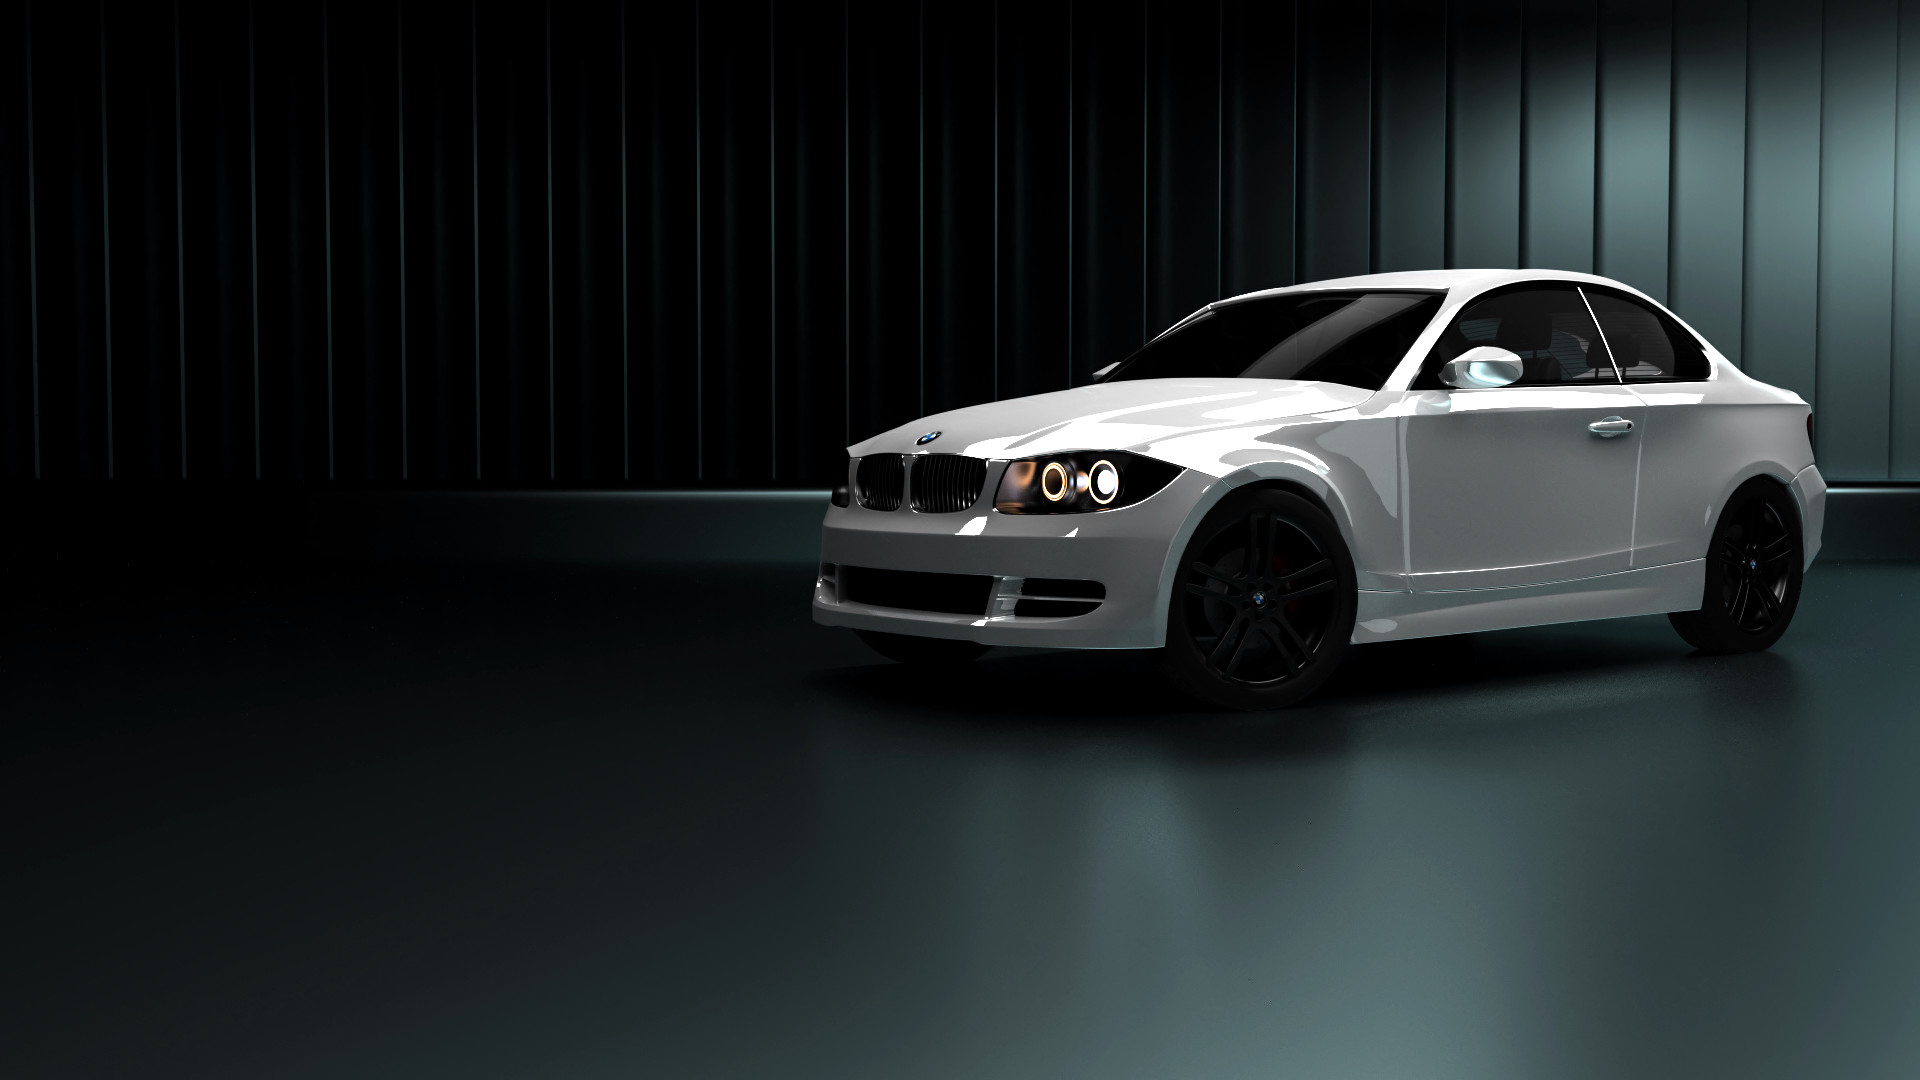 BMW 135I Wallpaper 58 images 1920x1080